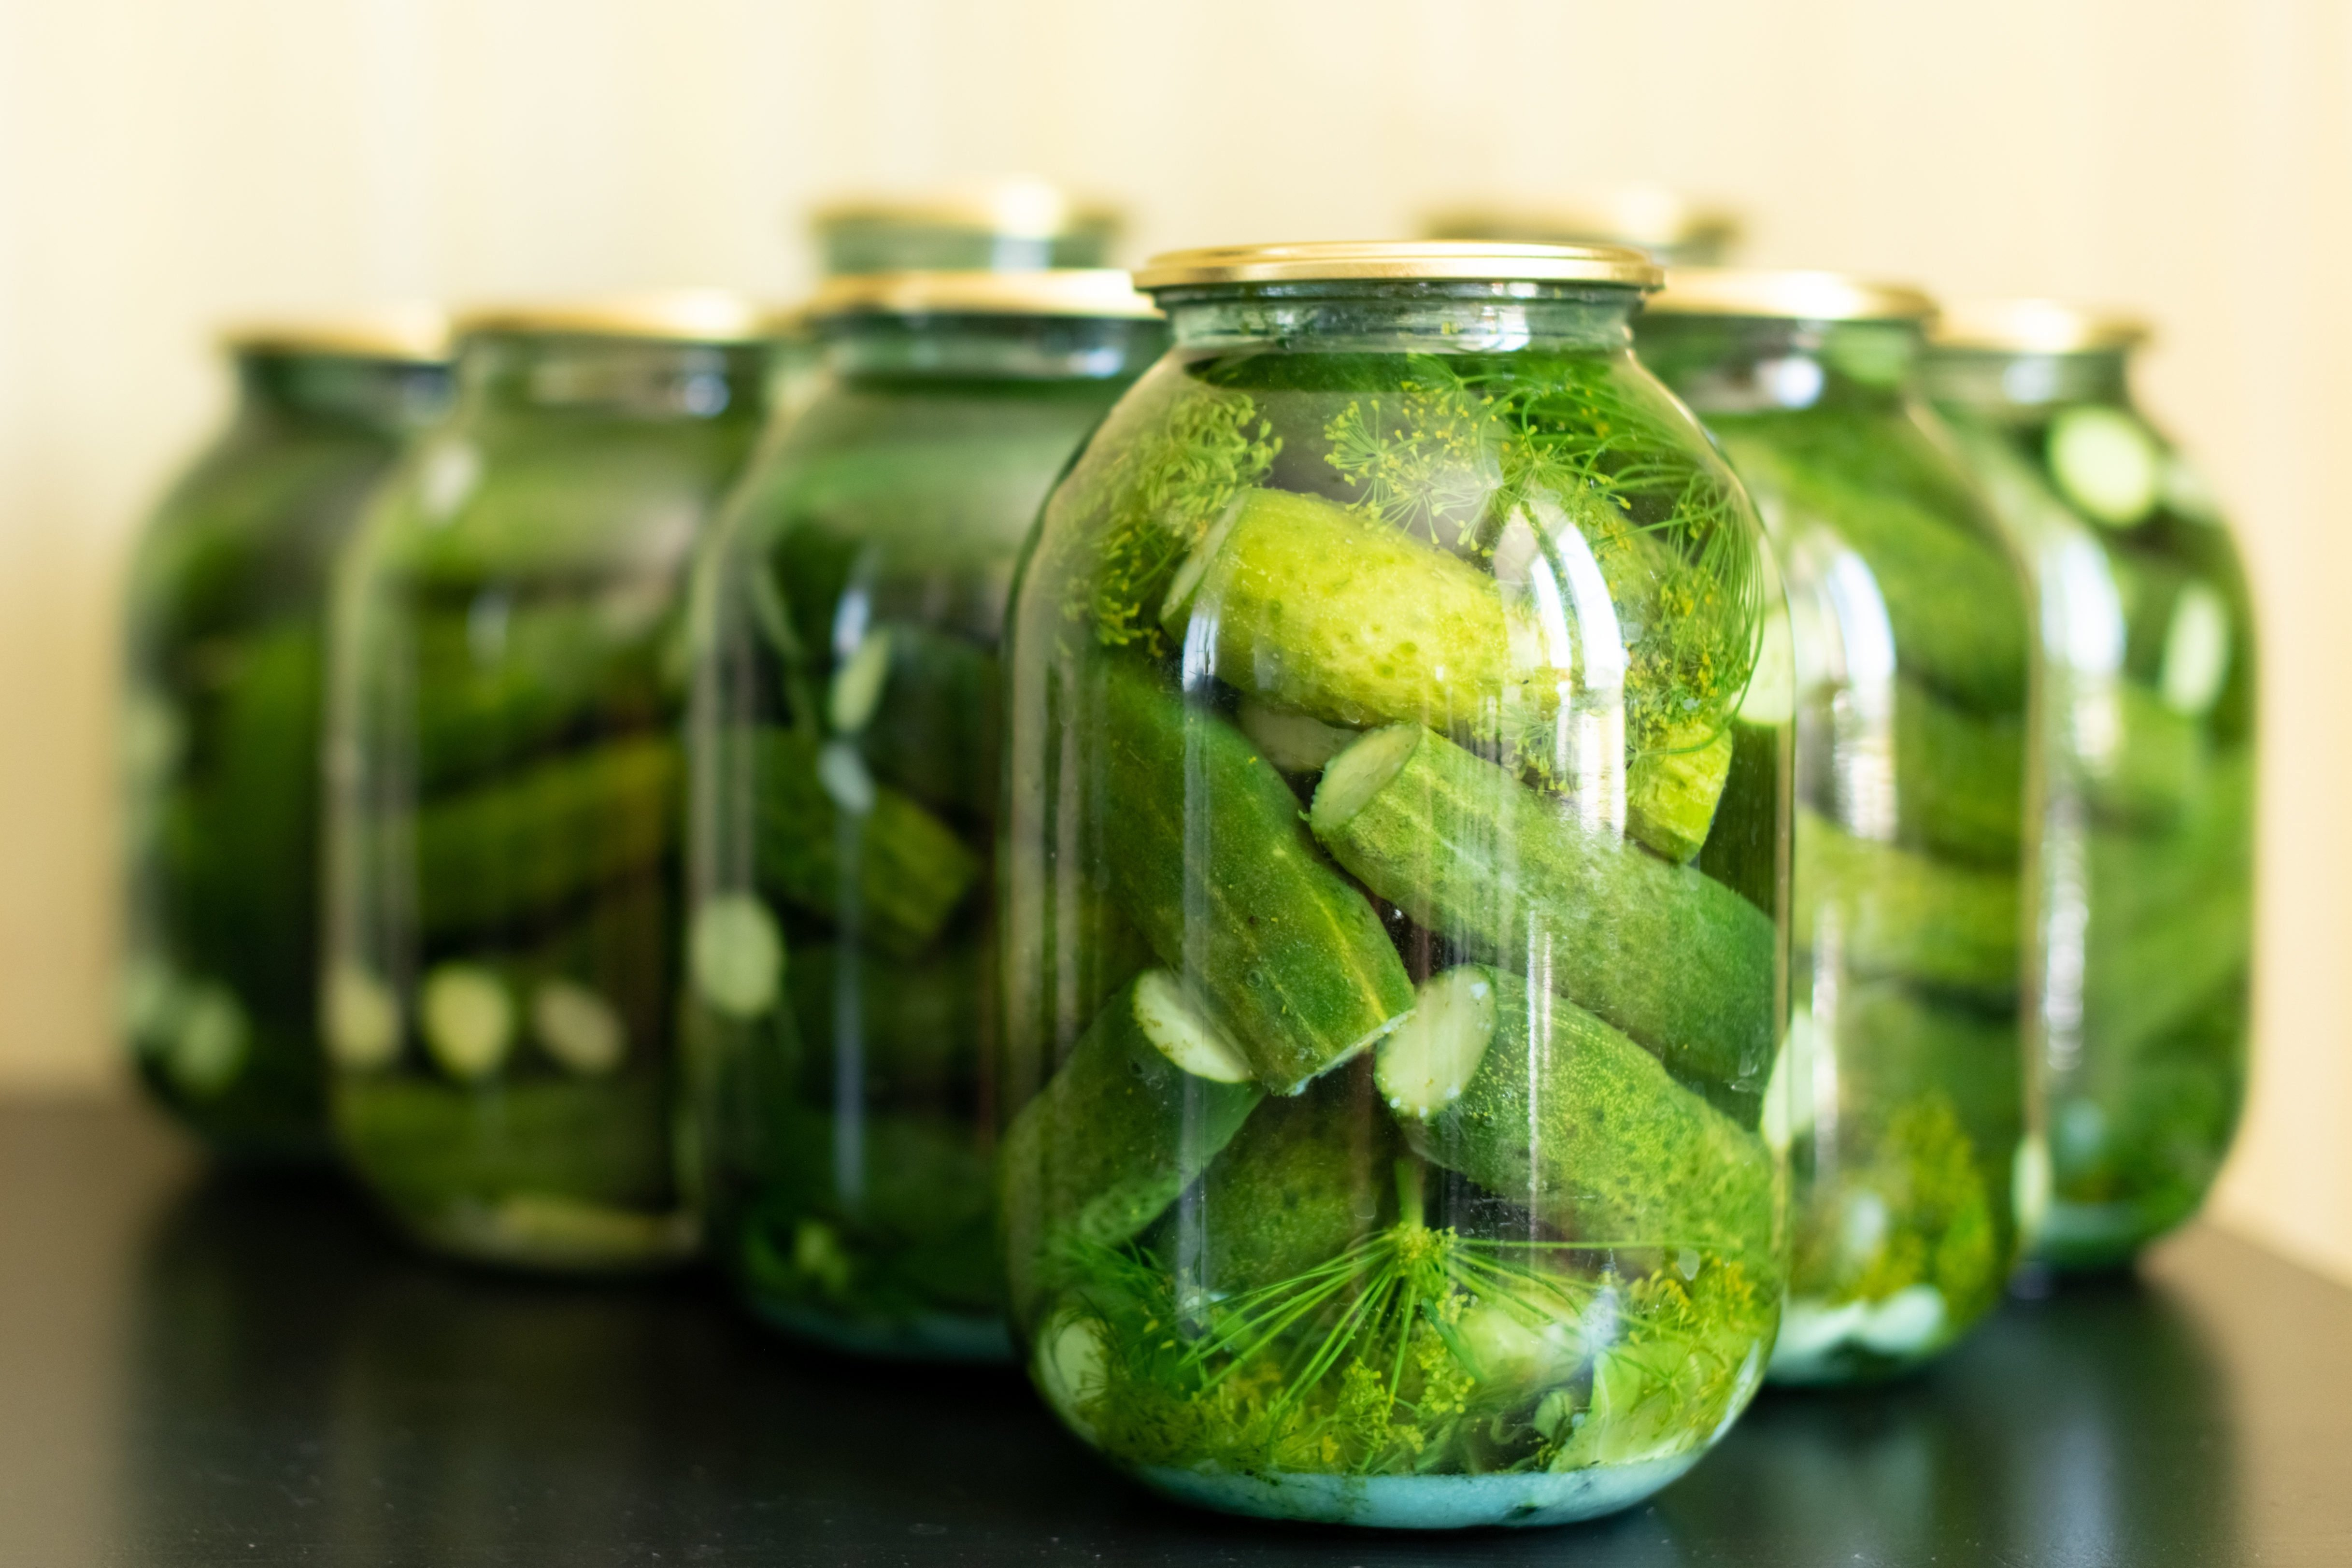 Pickled cucumbers in glass jar on a gray wooden table.